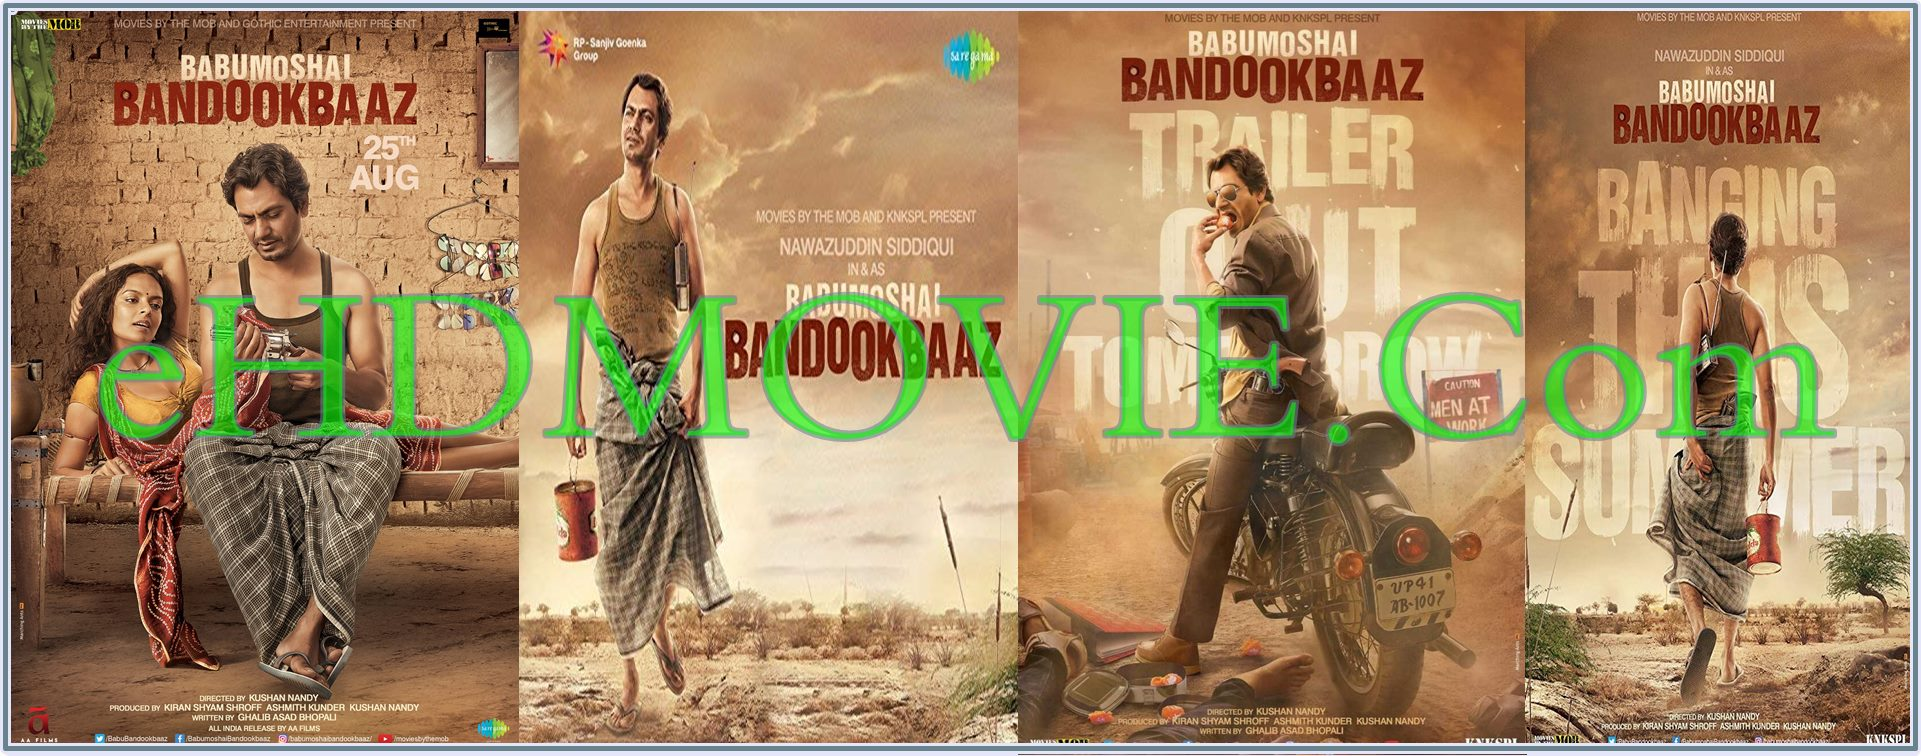 Babumoshai Bandookbaaz 2017 Full Movie Hindi 1080p – 720p – HEVC – 480p ORG WEB-DL 350MB – 550MB – 950MB – 2GB ESubs Free Download